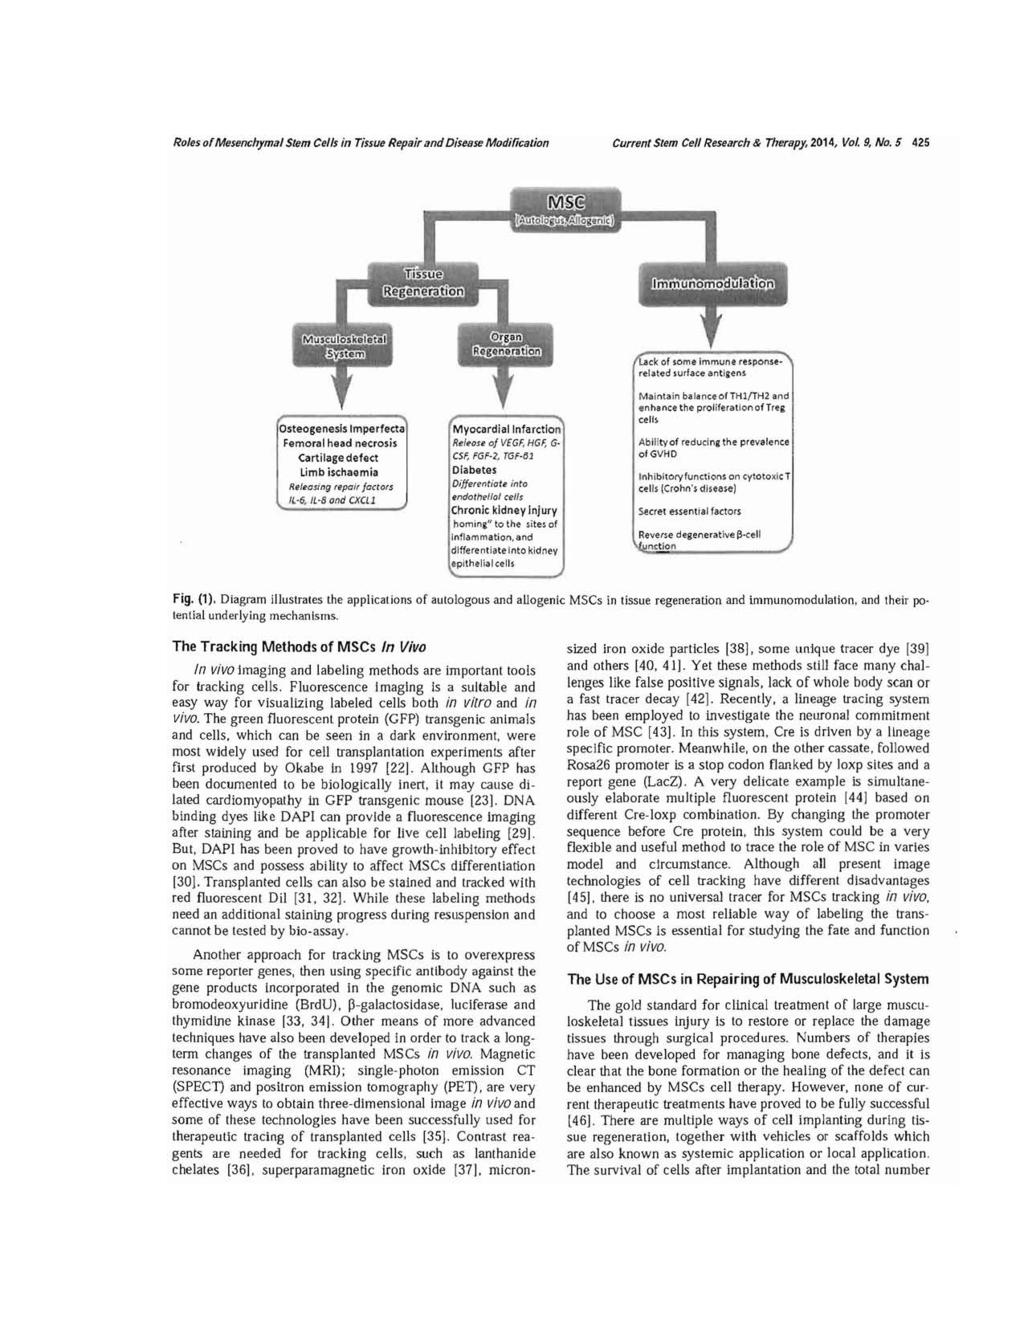 The Roles of Mesenchymal Stem Cells in Tissue Repair and